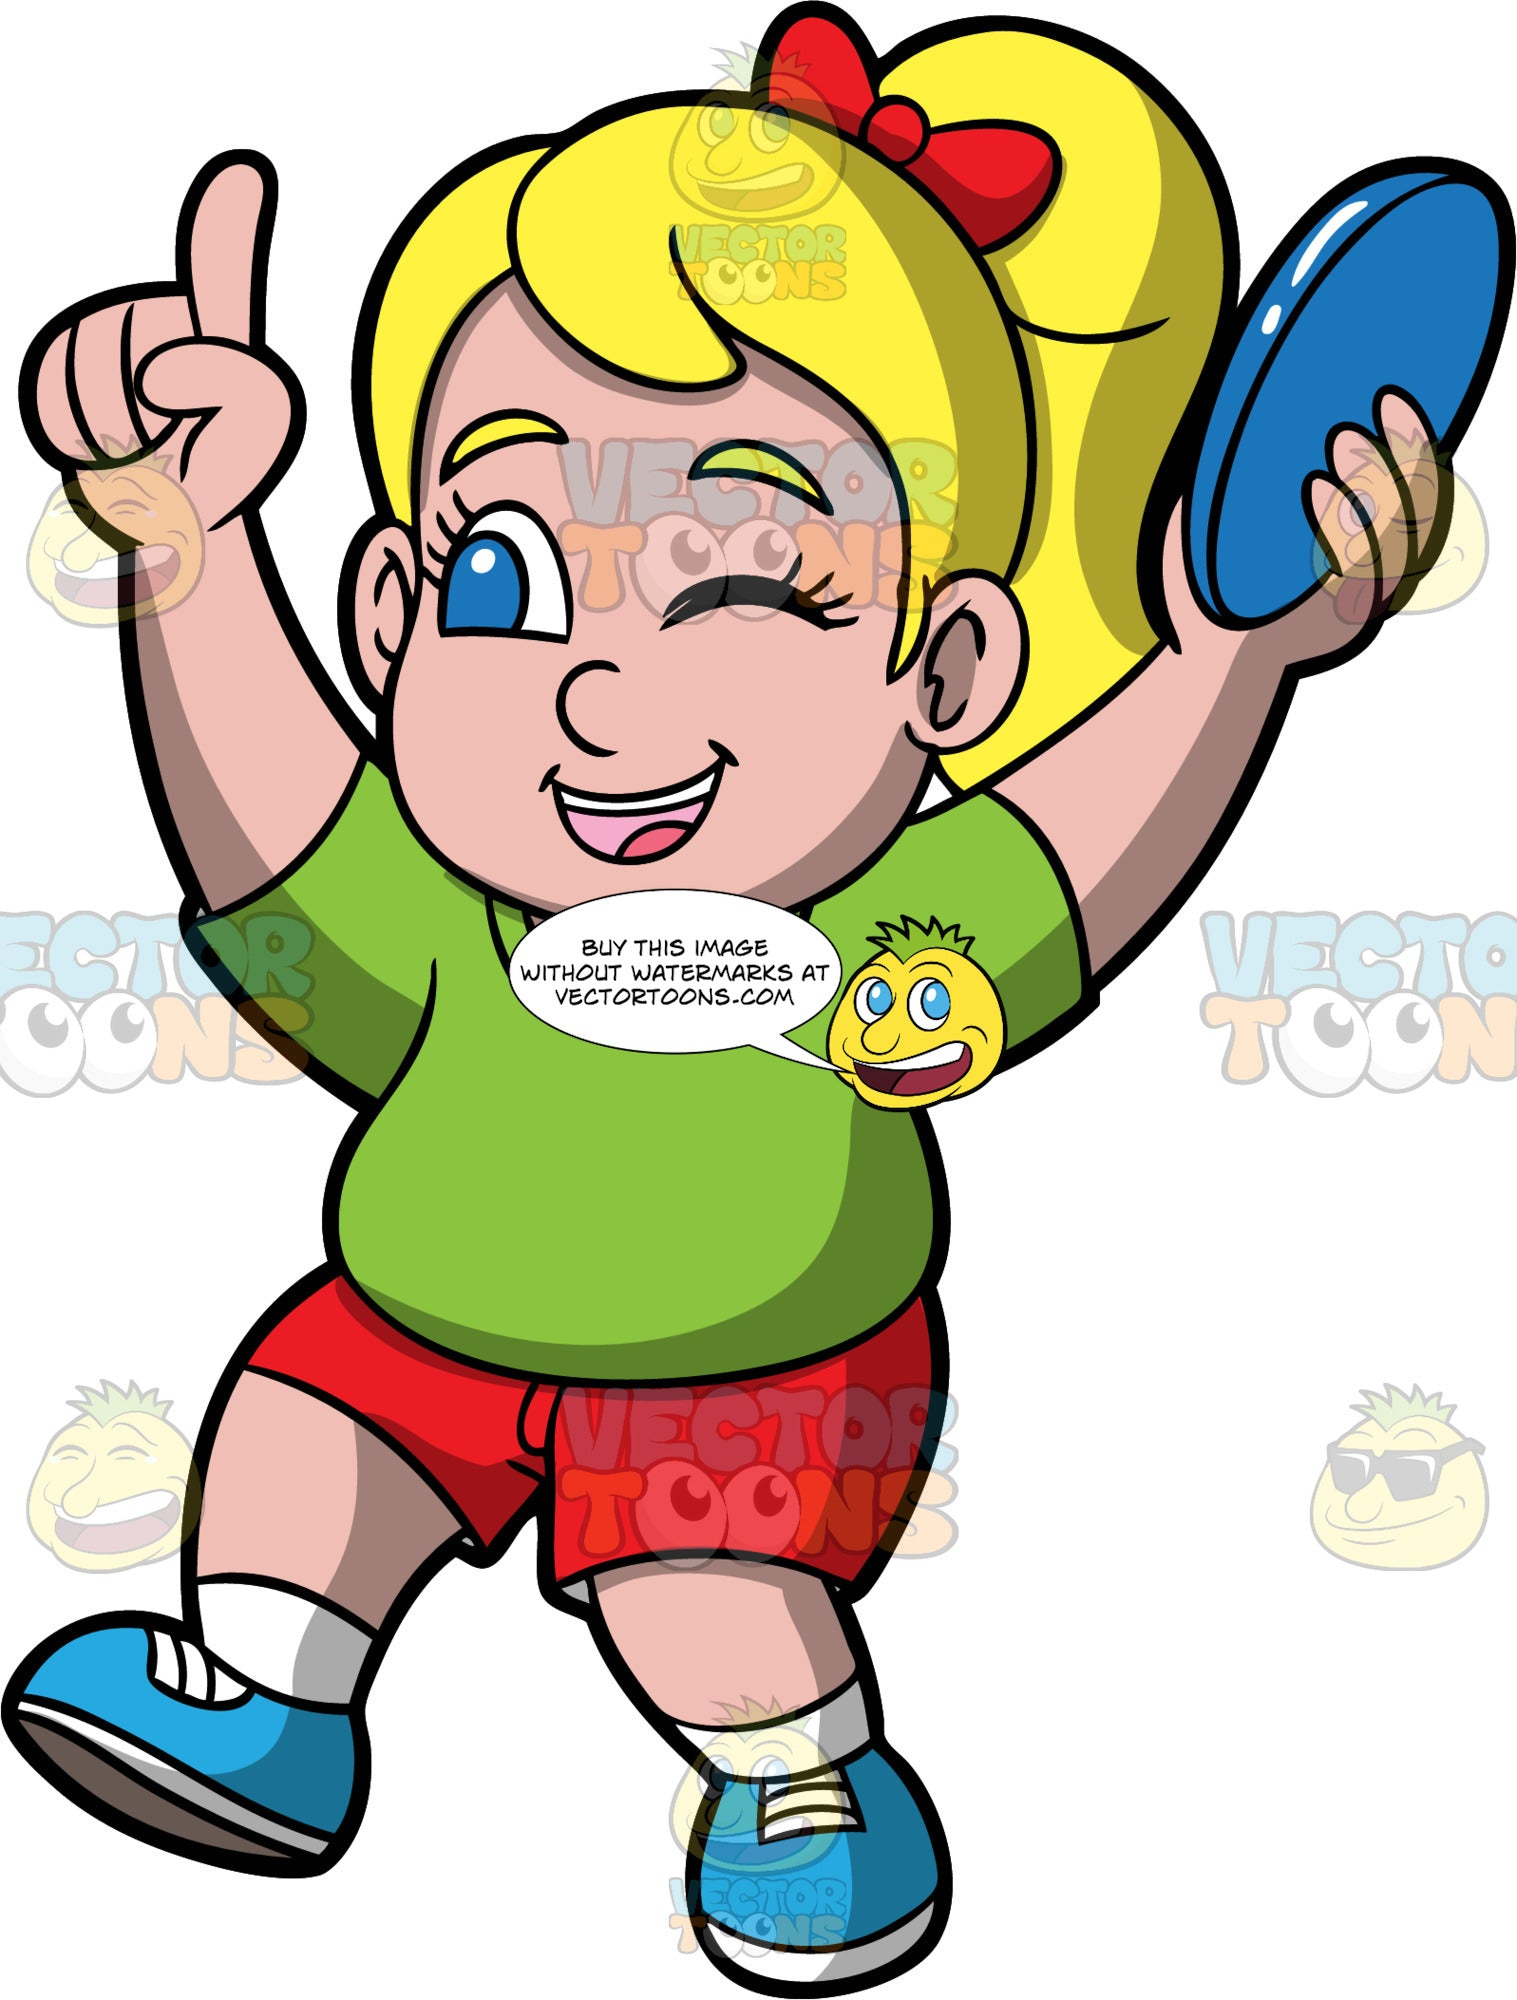 Young Pat Holding A Frisbee. A chubby blonde girl wearing red shorts, a green t-shrit, and blue running shoes, winking and holding a blue frisbee in her hand